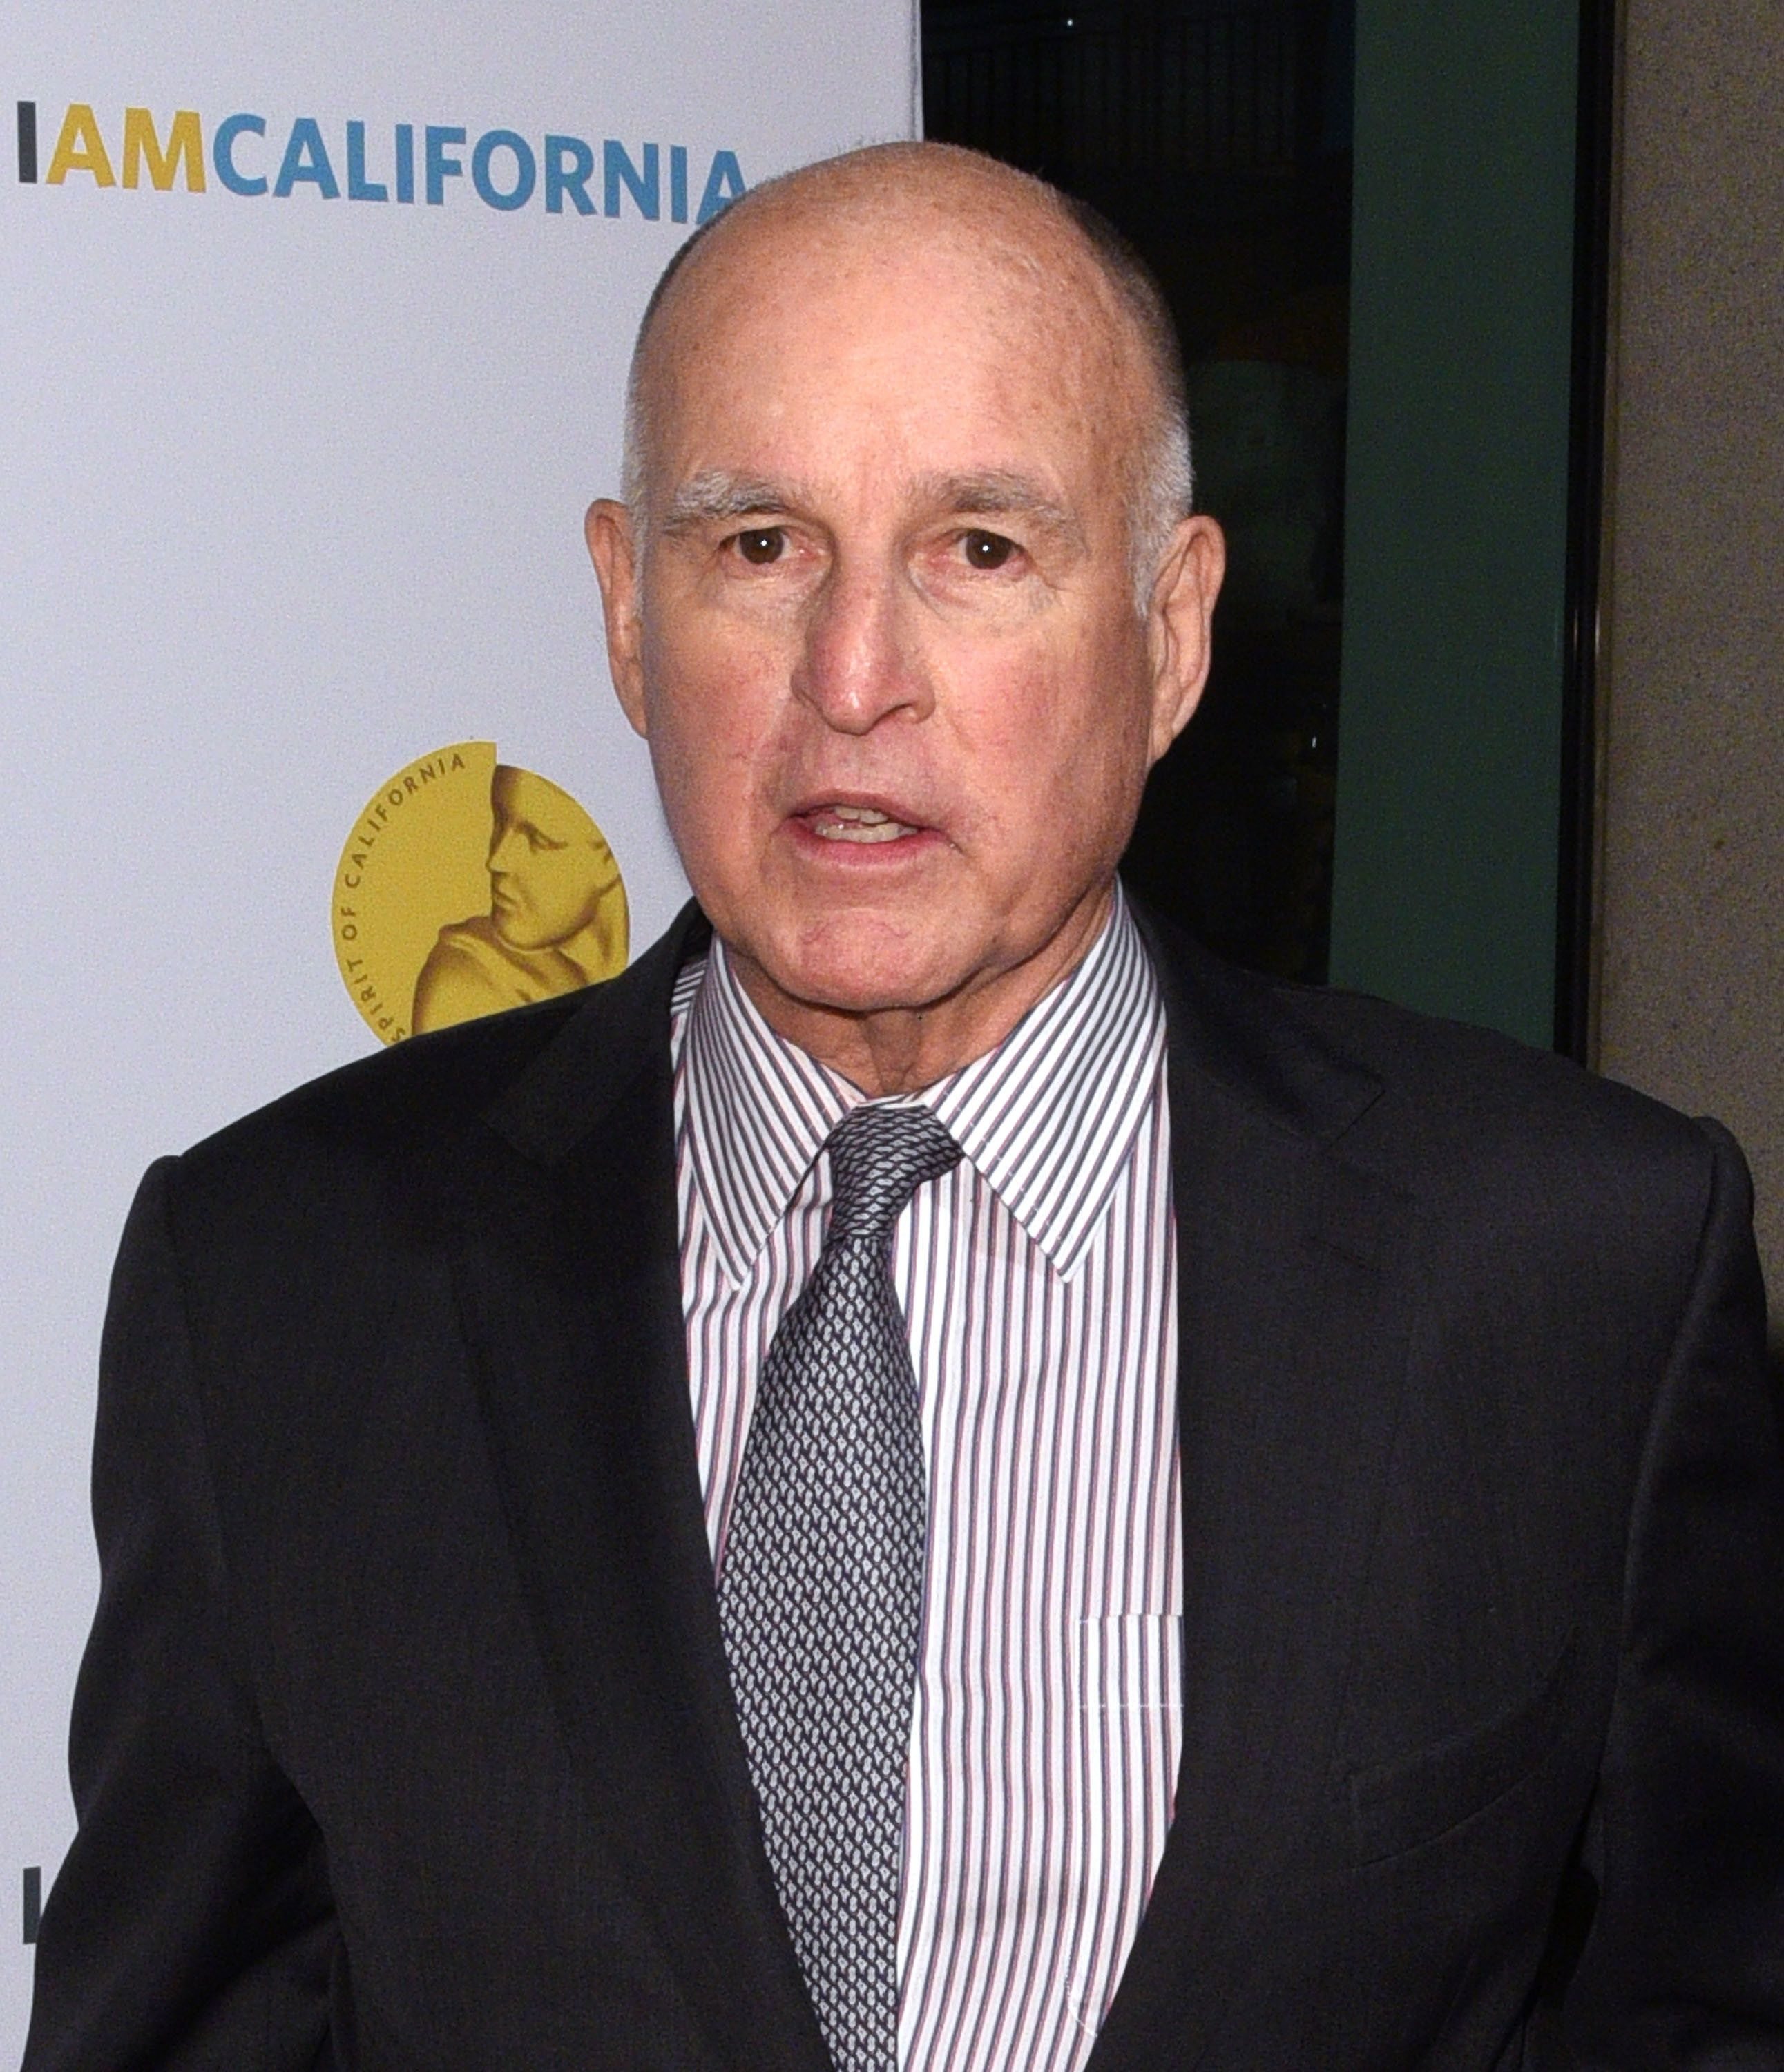 SACRAMENTO, CA - NOVEMBER 30:  Governor of California, Edmund G. 'Jerry' Brown, Jr. attends the 10th Annual California Hall Of Fame Ceremony at The California Museum on November 30, 2016 in Sacramento, California.  (Photo by C Flanigan/FilmMagic)